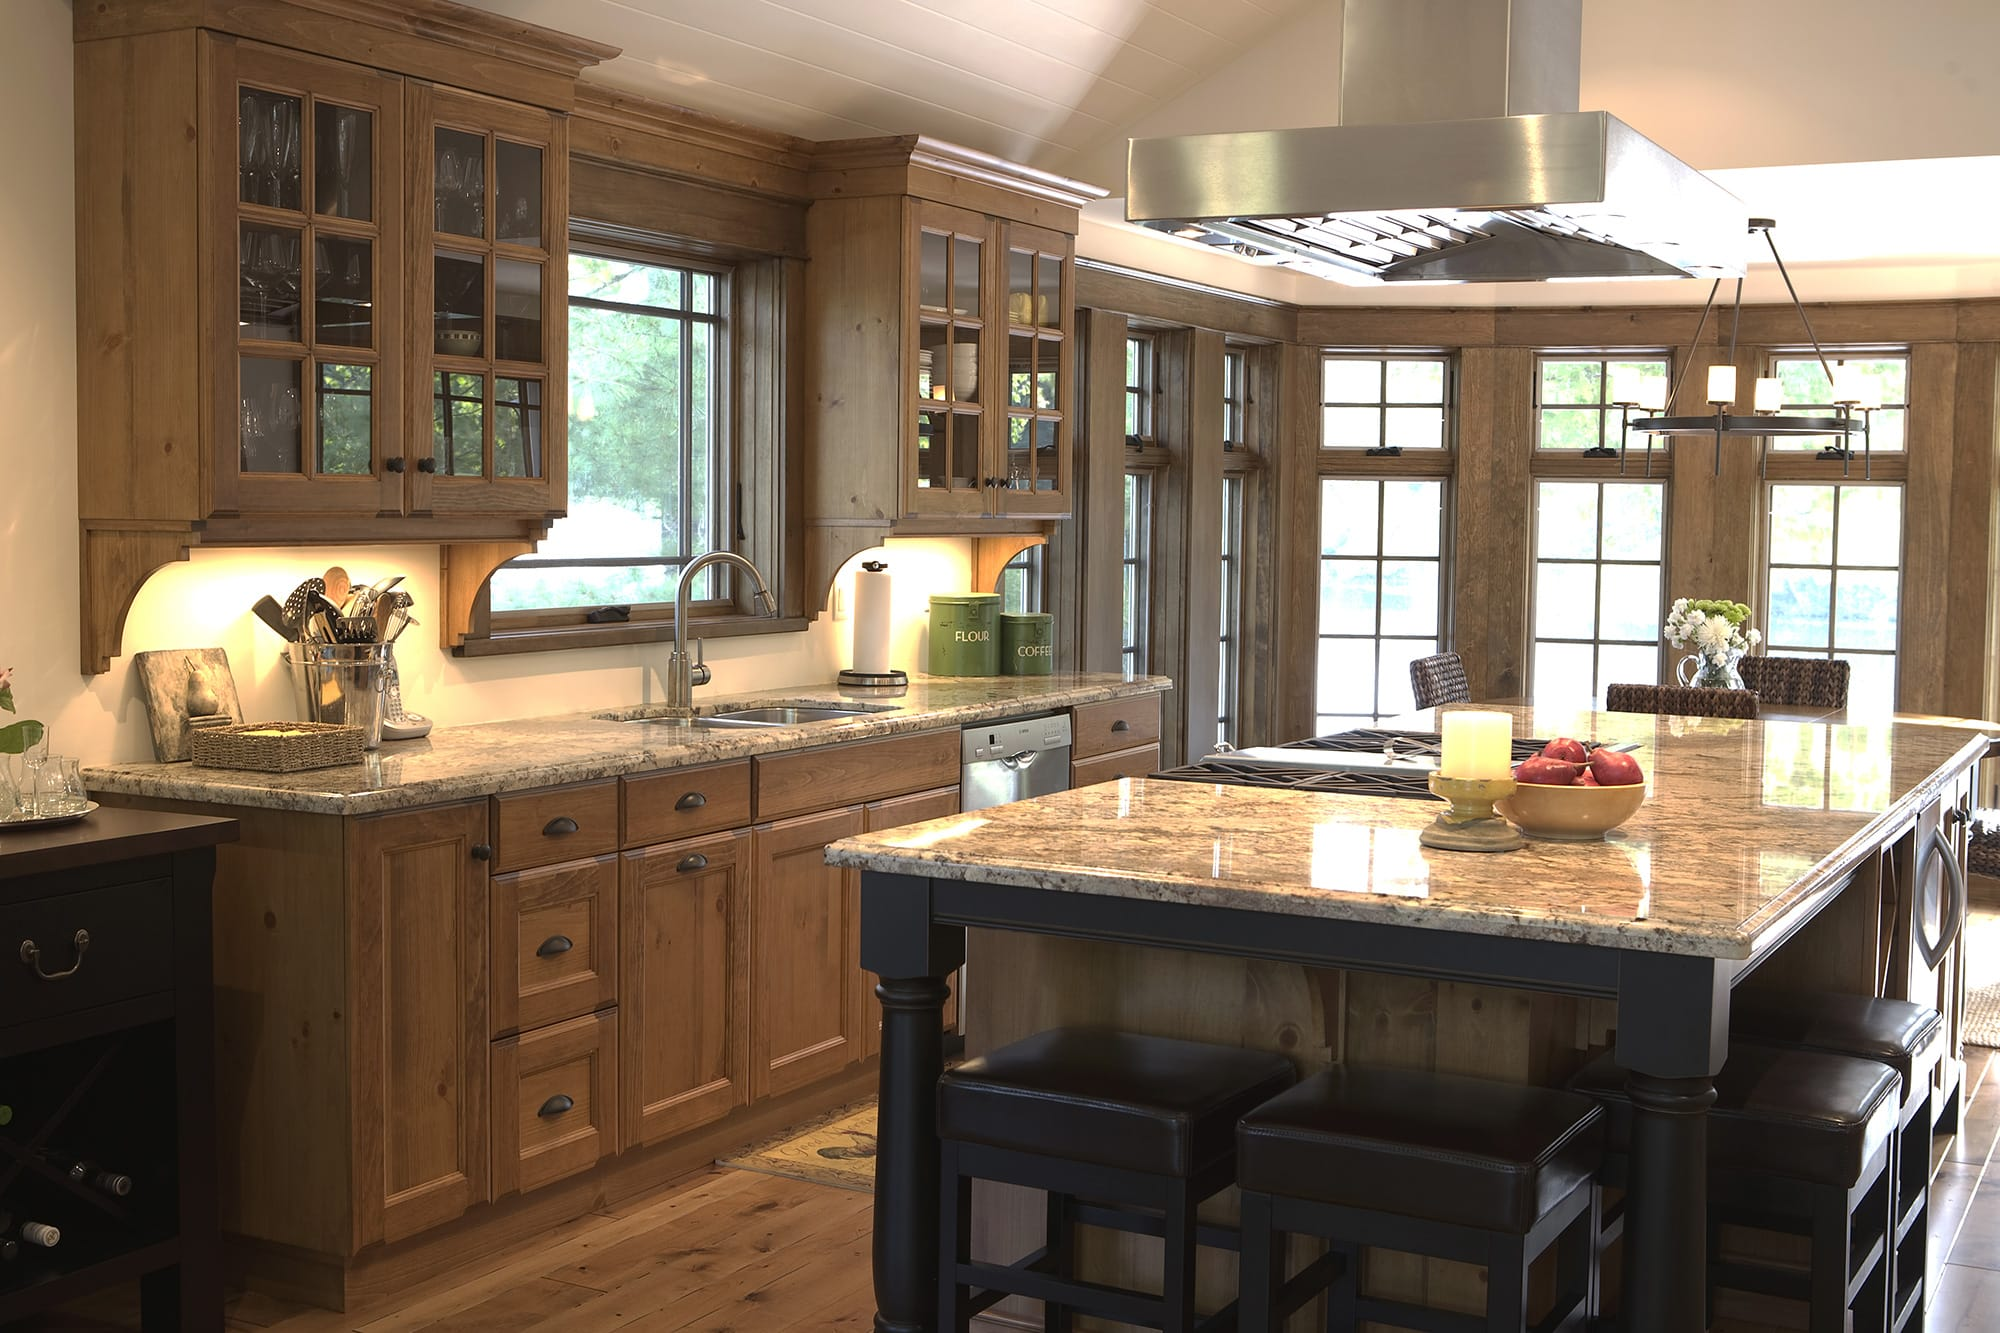 kitchen countertops pictures cow kitchens | northern living and bath ltd.